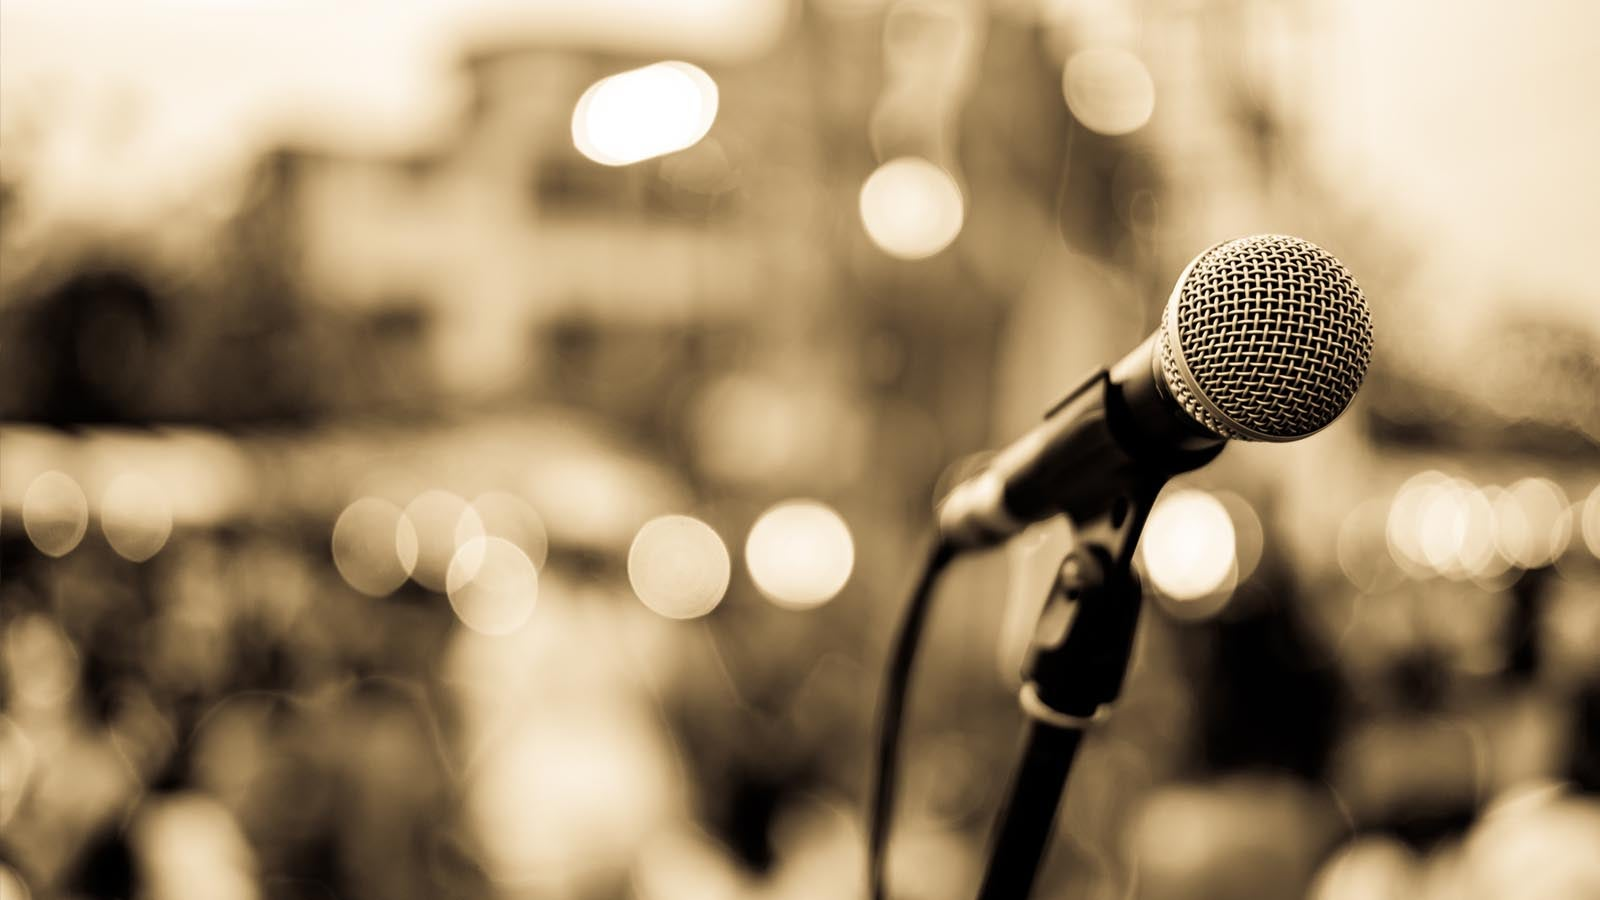 Close up photograph of a microphone